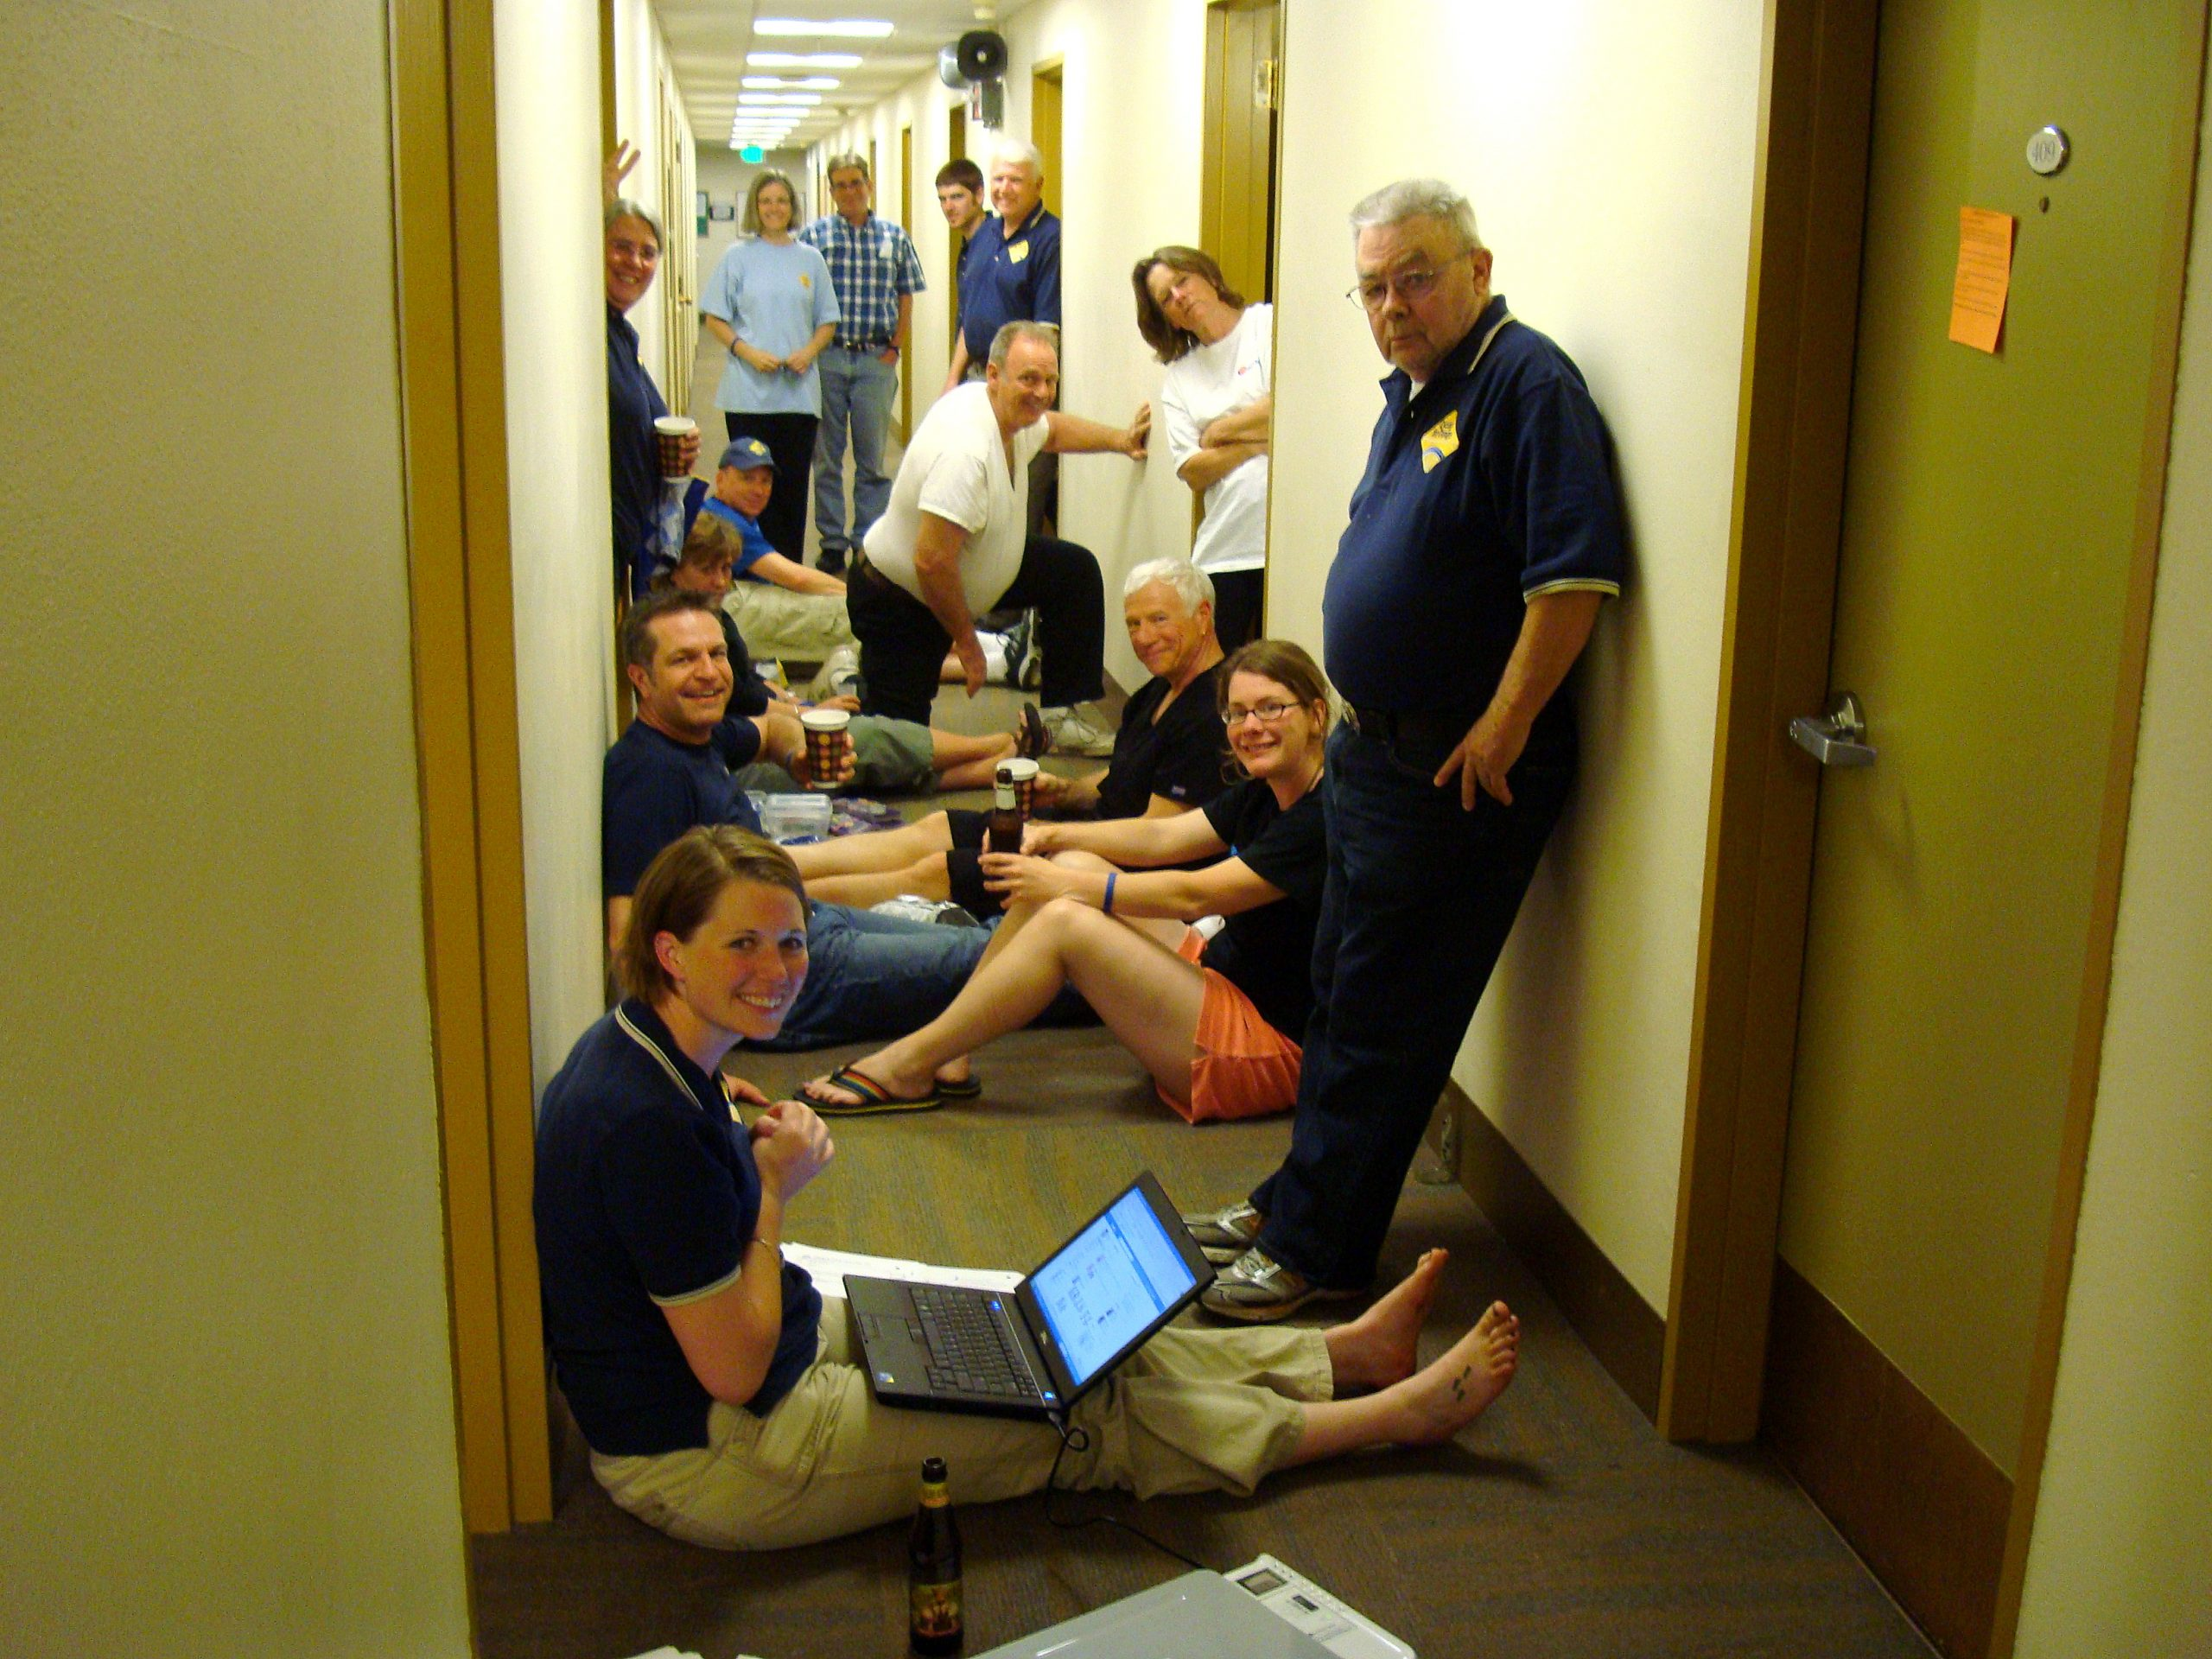 C4C gathers in the dorm hallway.